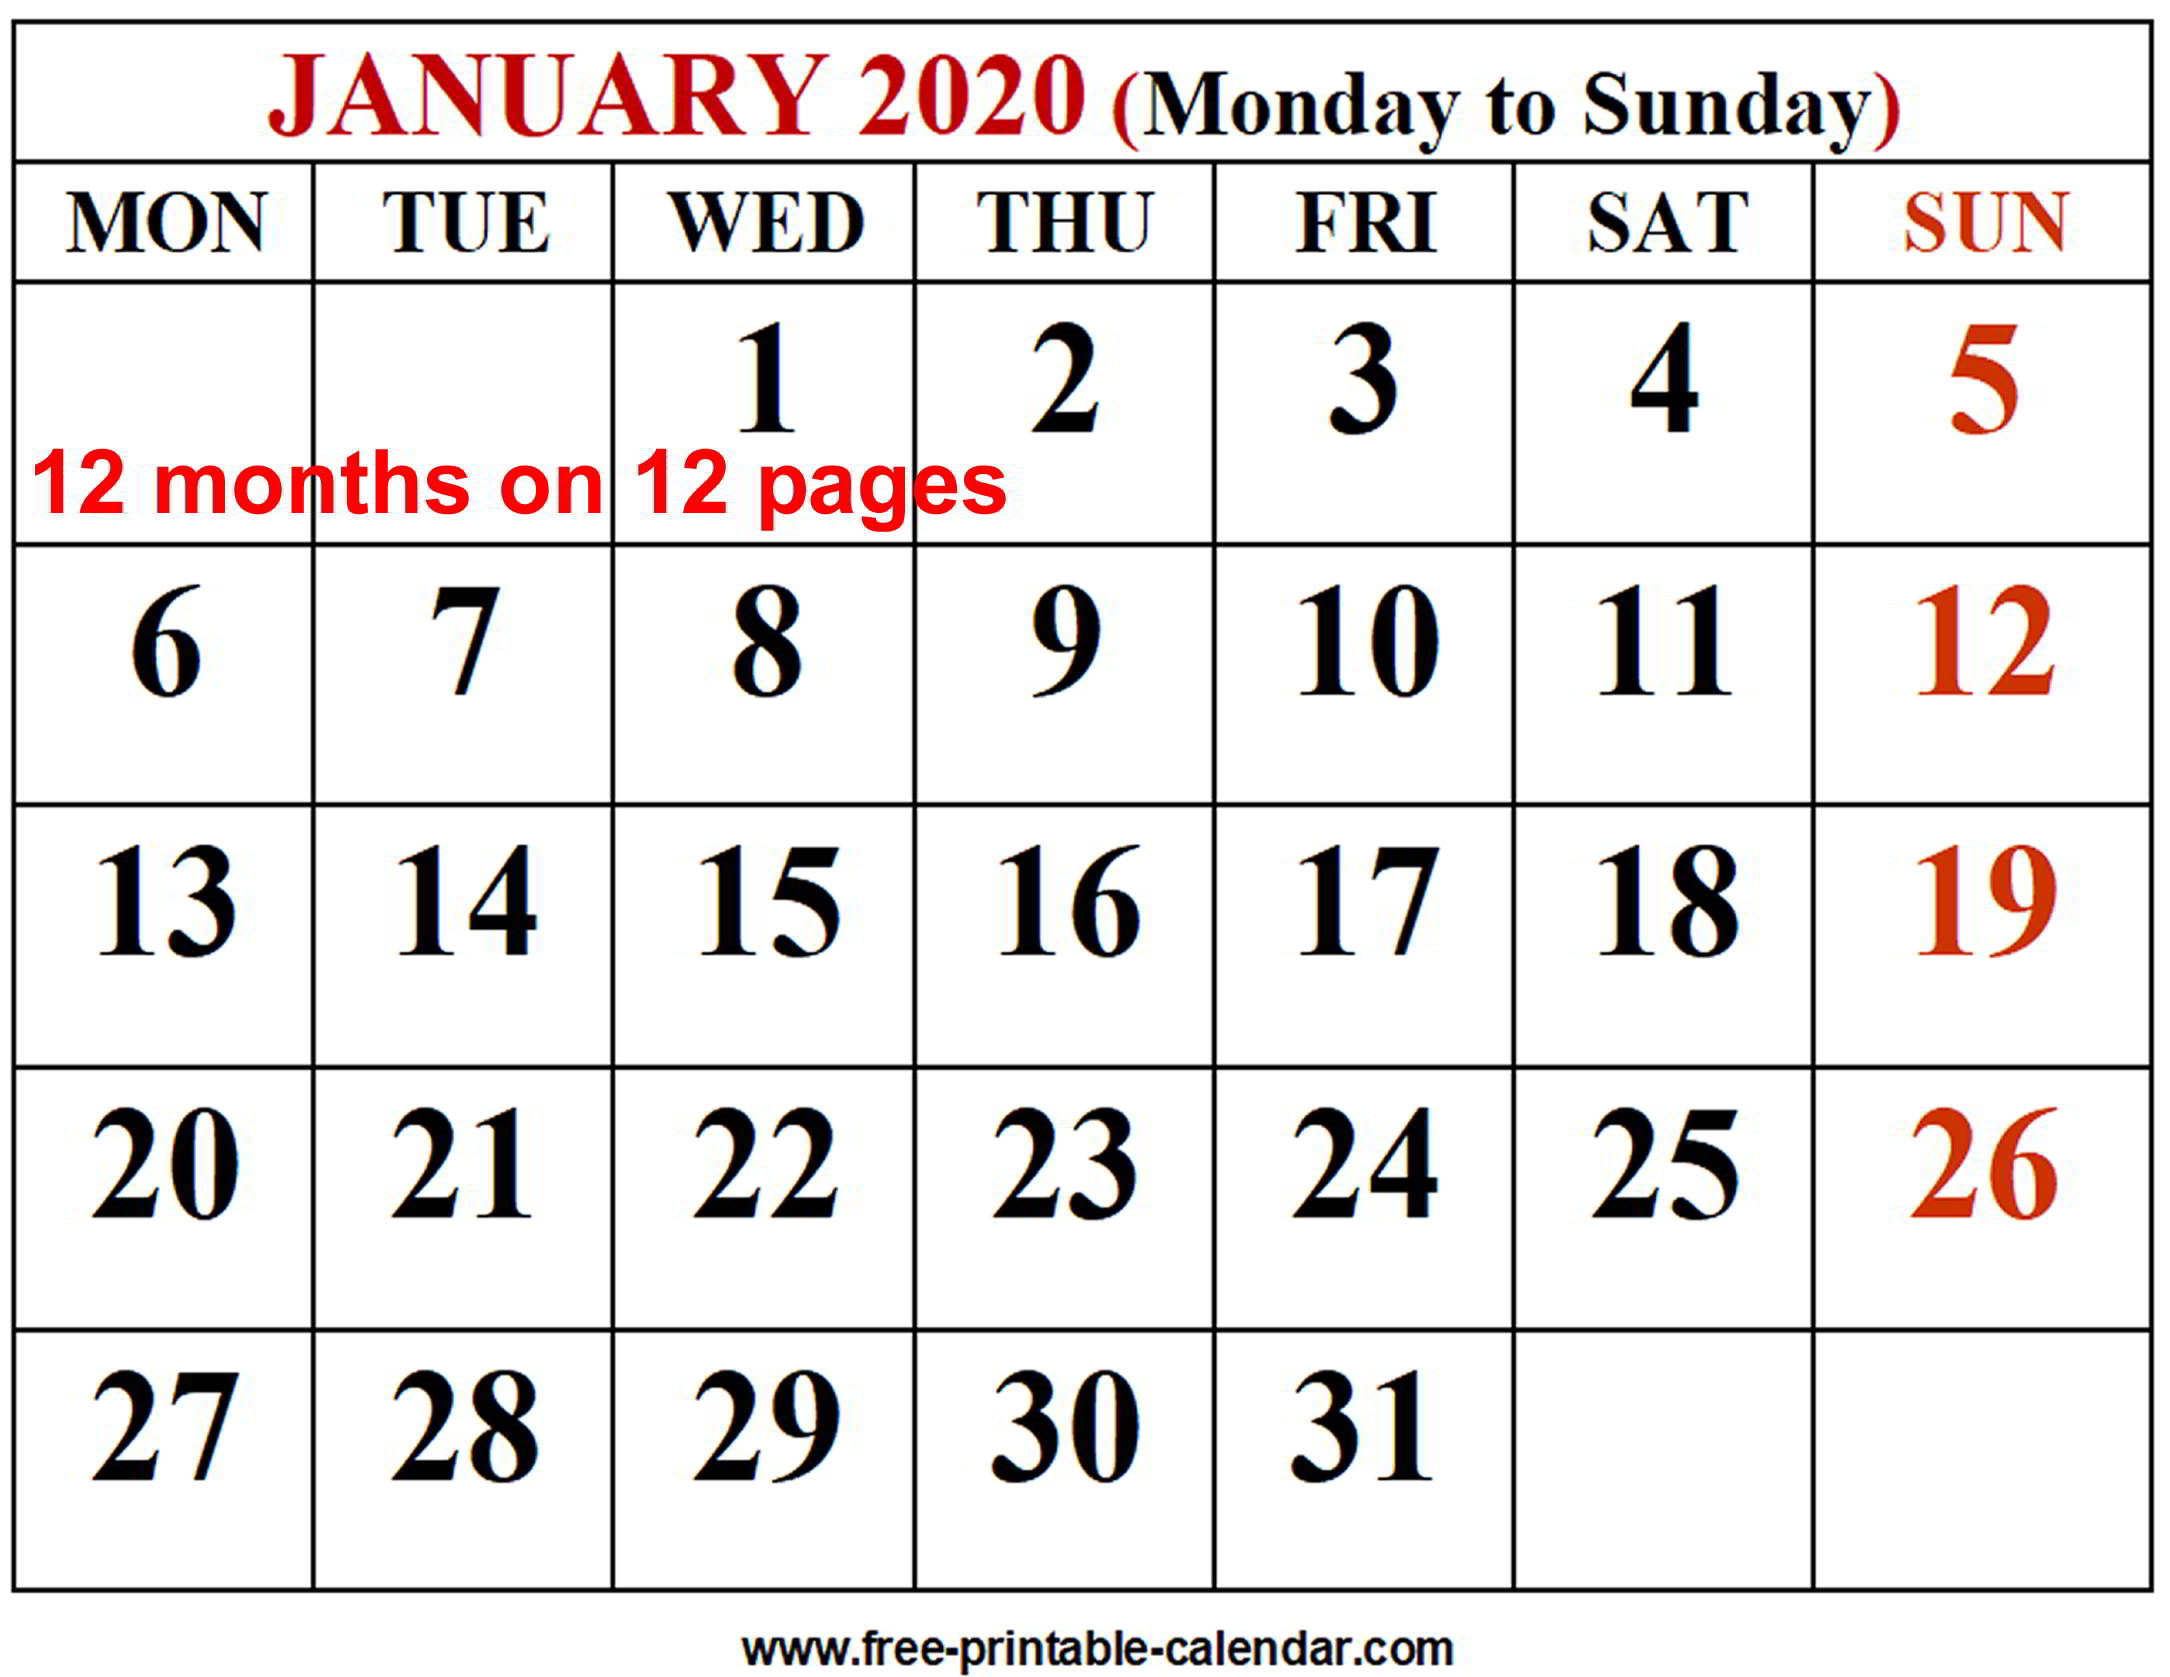 2020 Calendar Printable One Page - Wpart.co